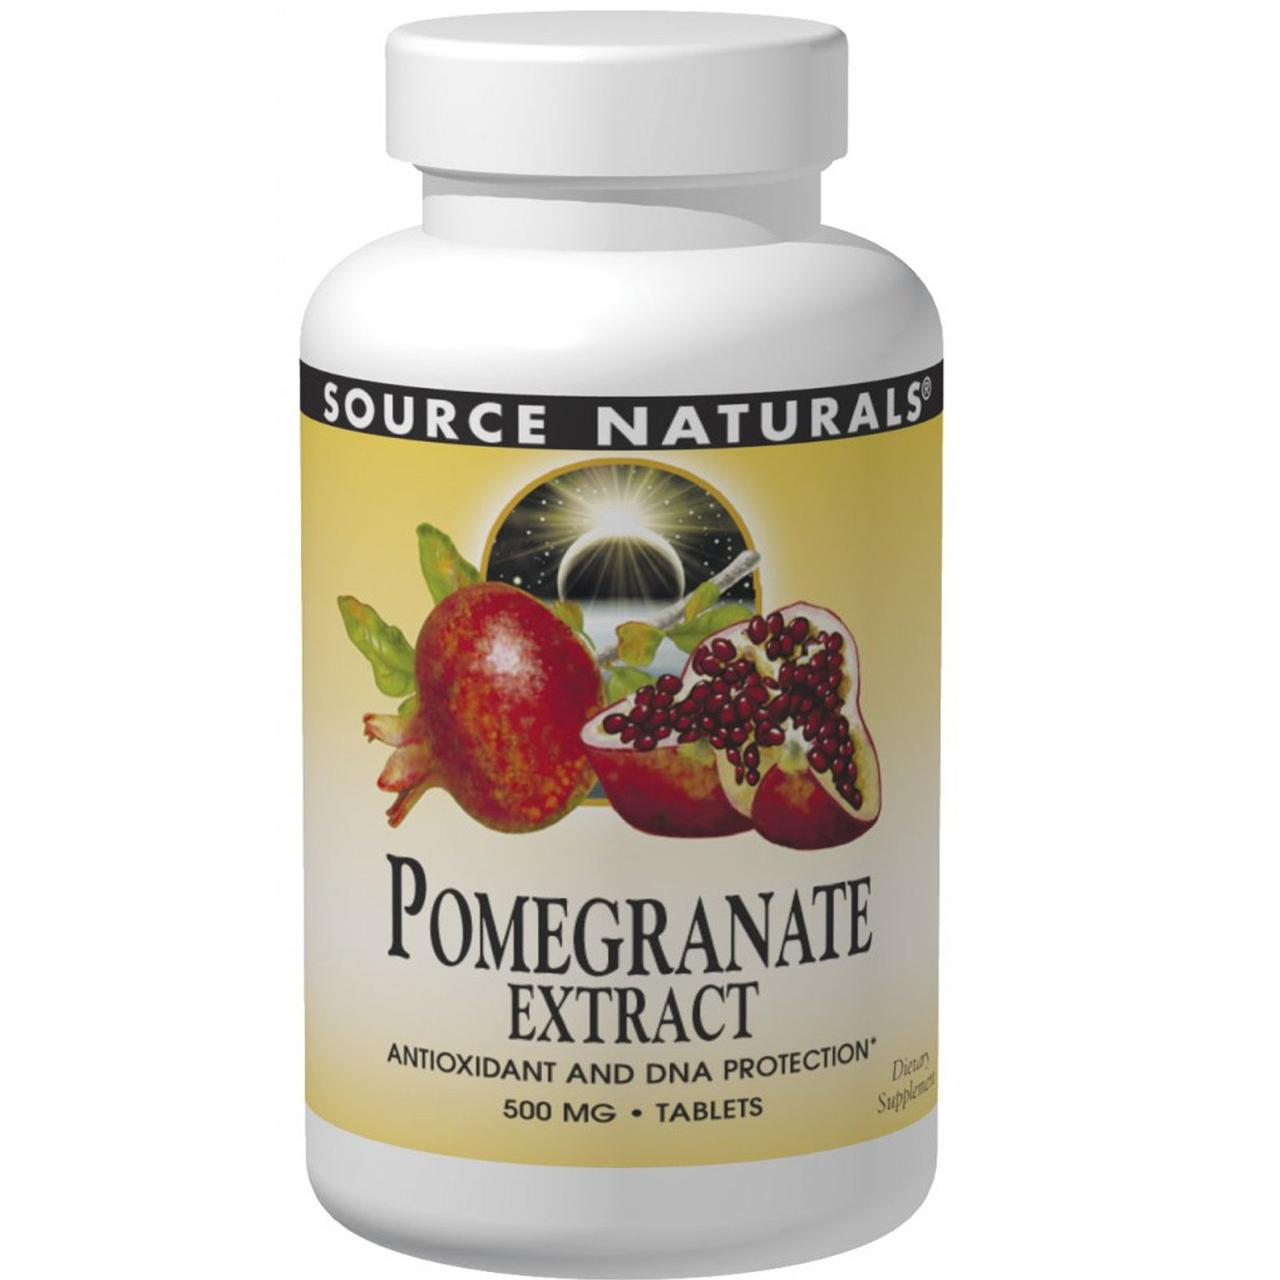 Экстракт граната, Pomegranate Extract, Source Naturals, 500 мг, 60 таб.